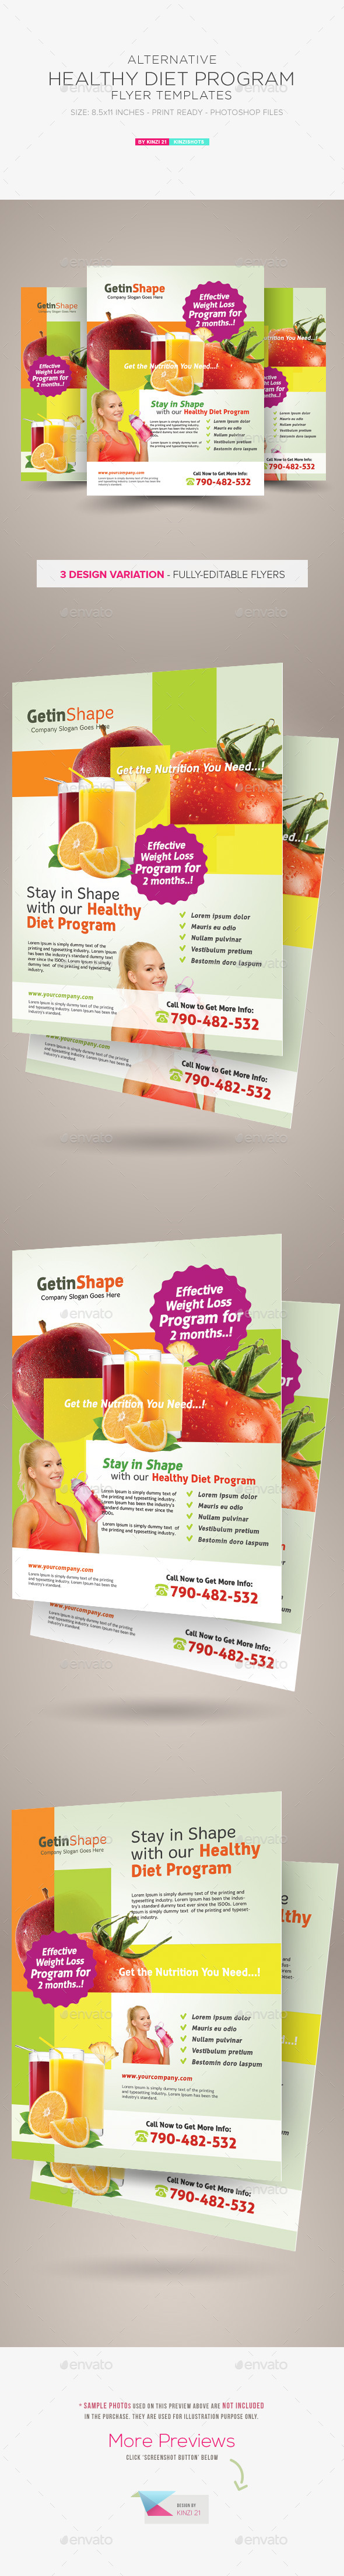 Healthy Diet Program Flyers - Corporate Flyers